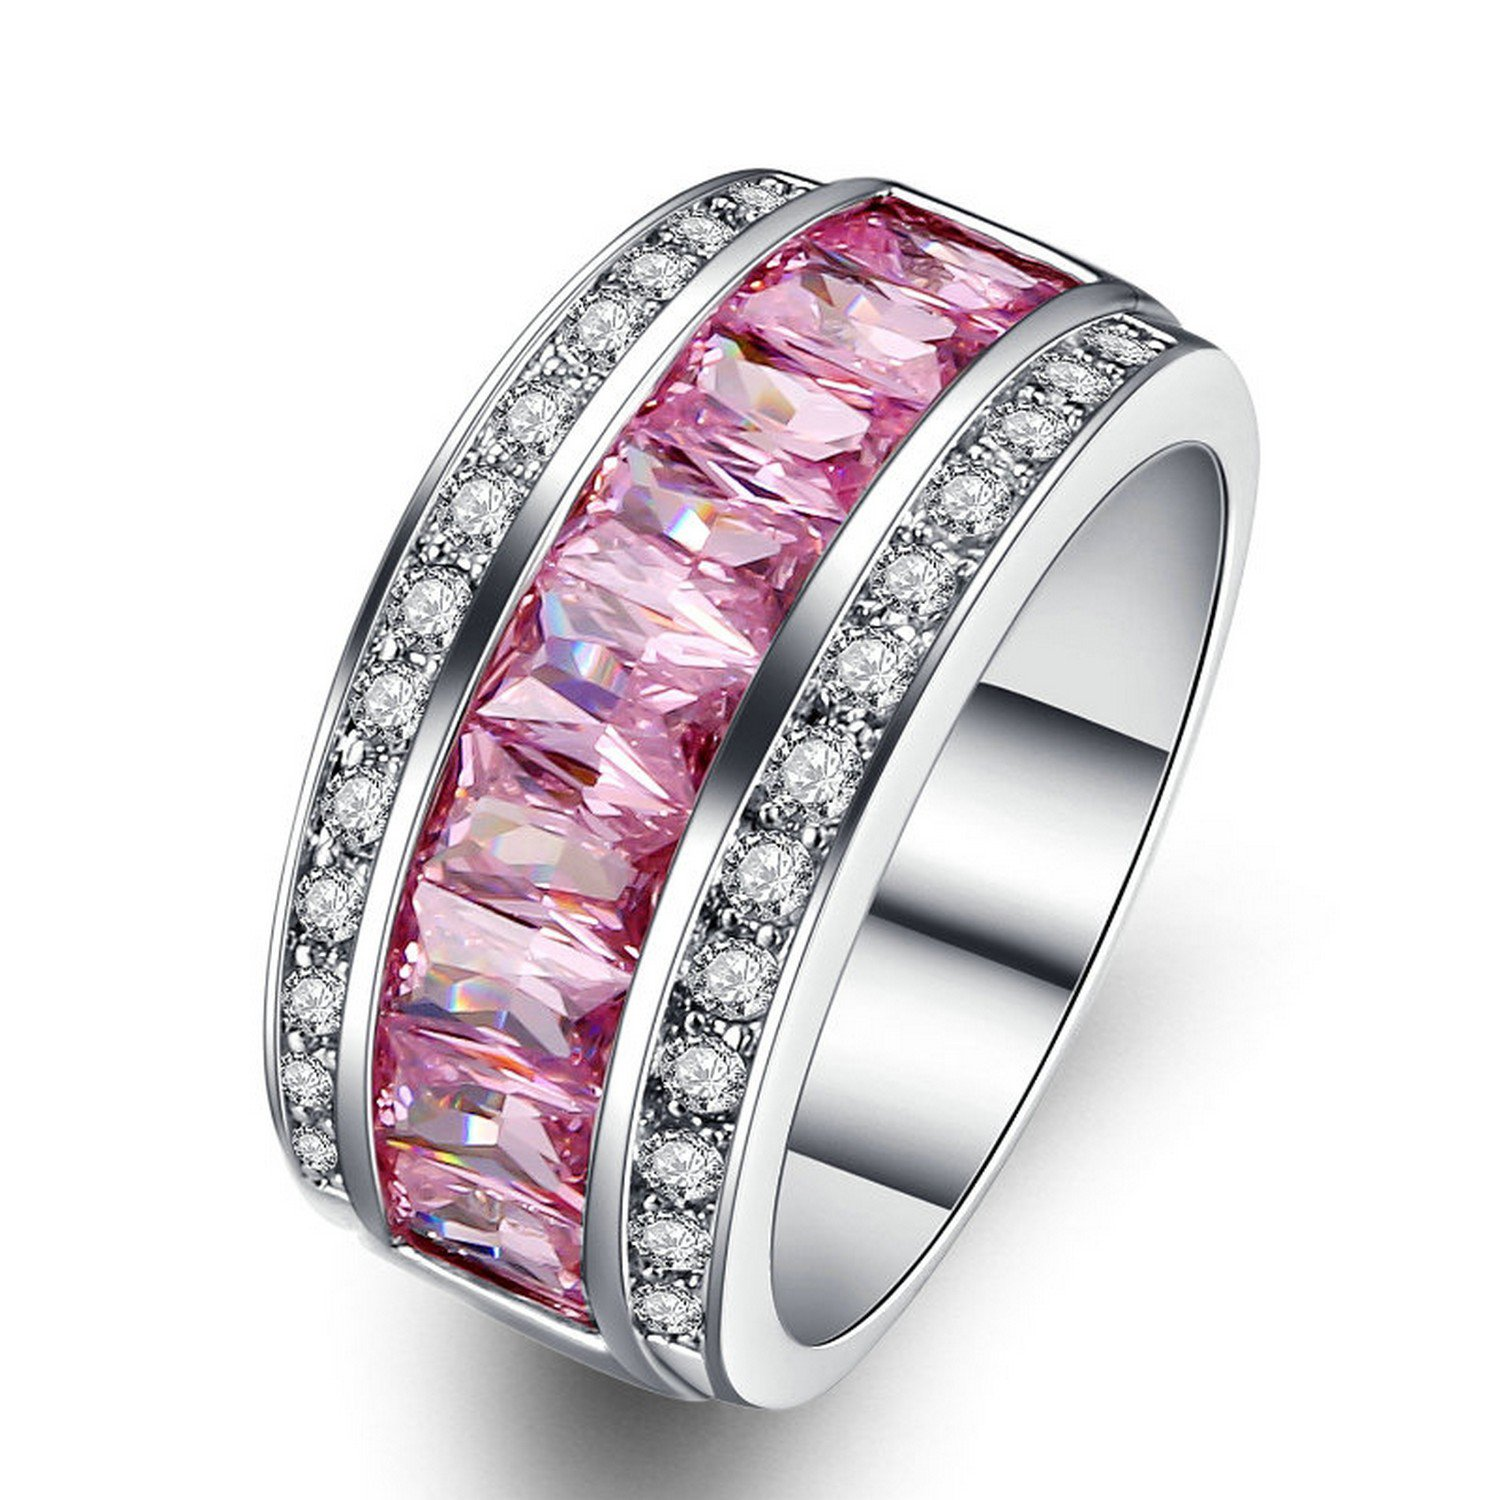 Dudee PRingcess Pink Color Square-cut cubic zirconia engagement rings fashion ring sets